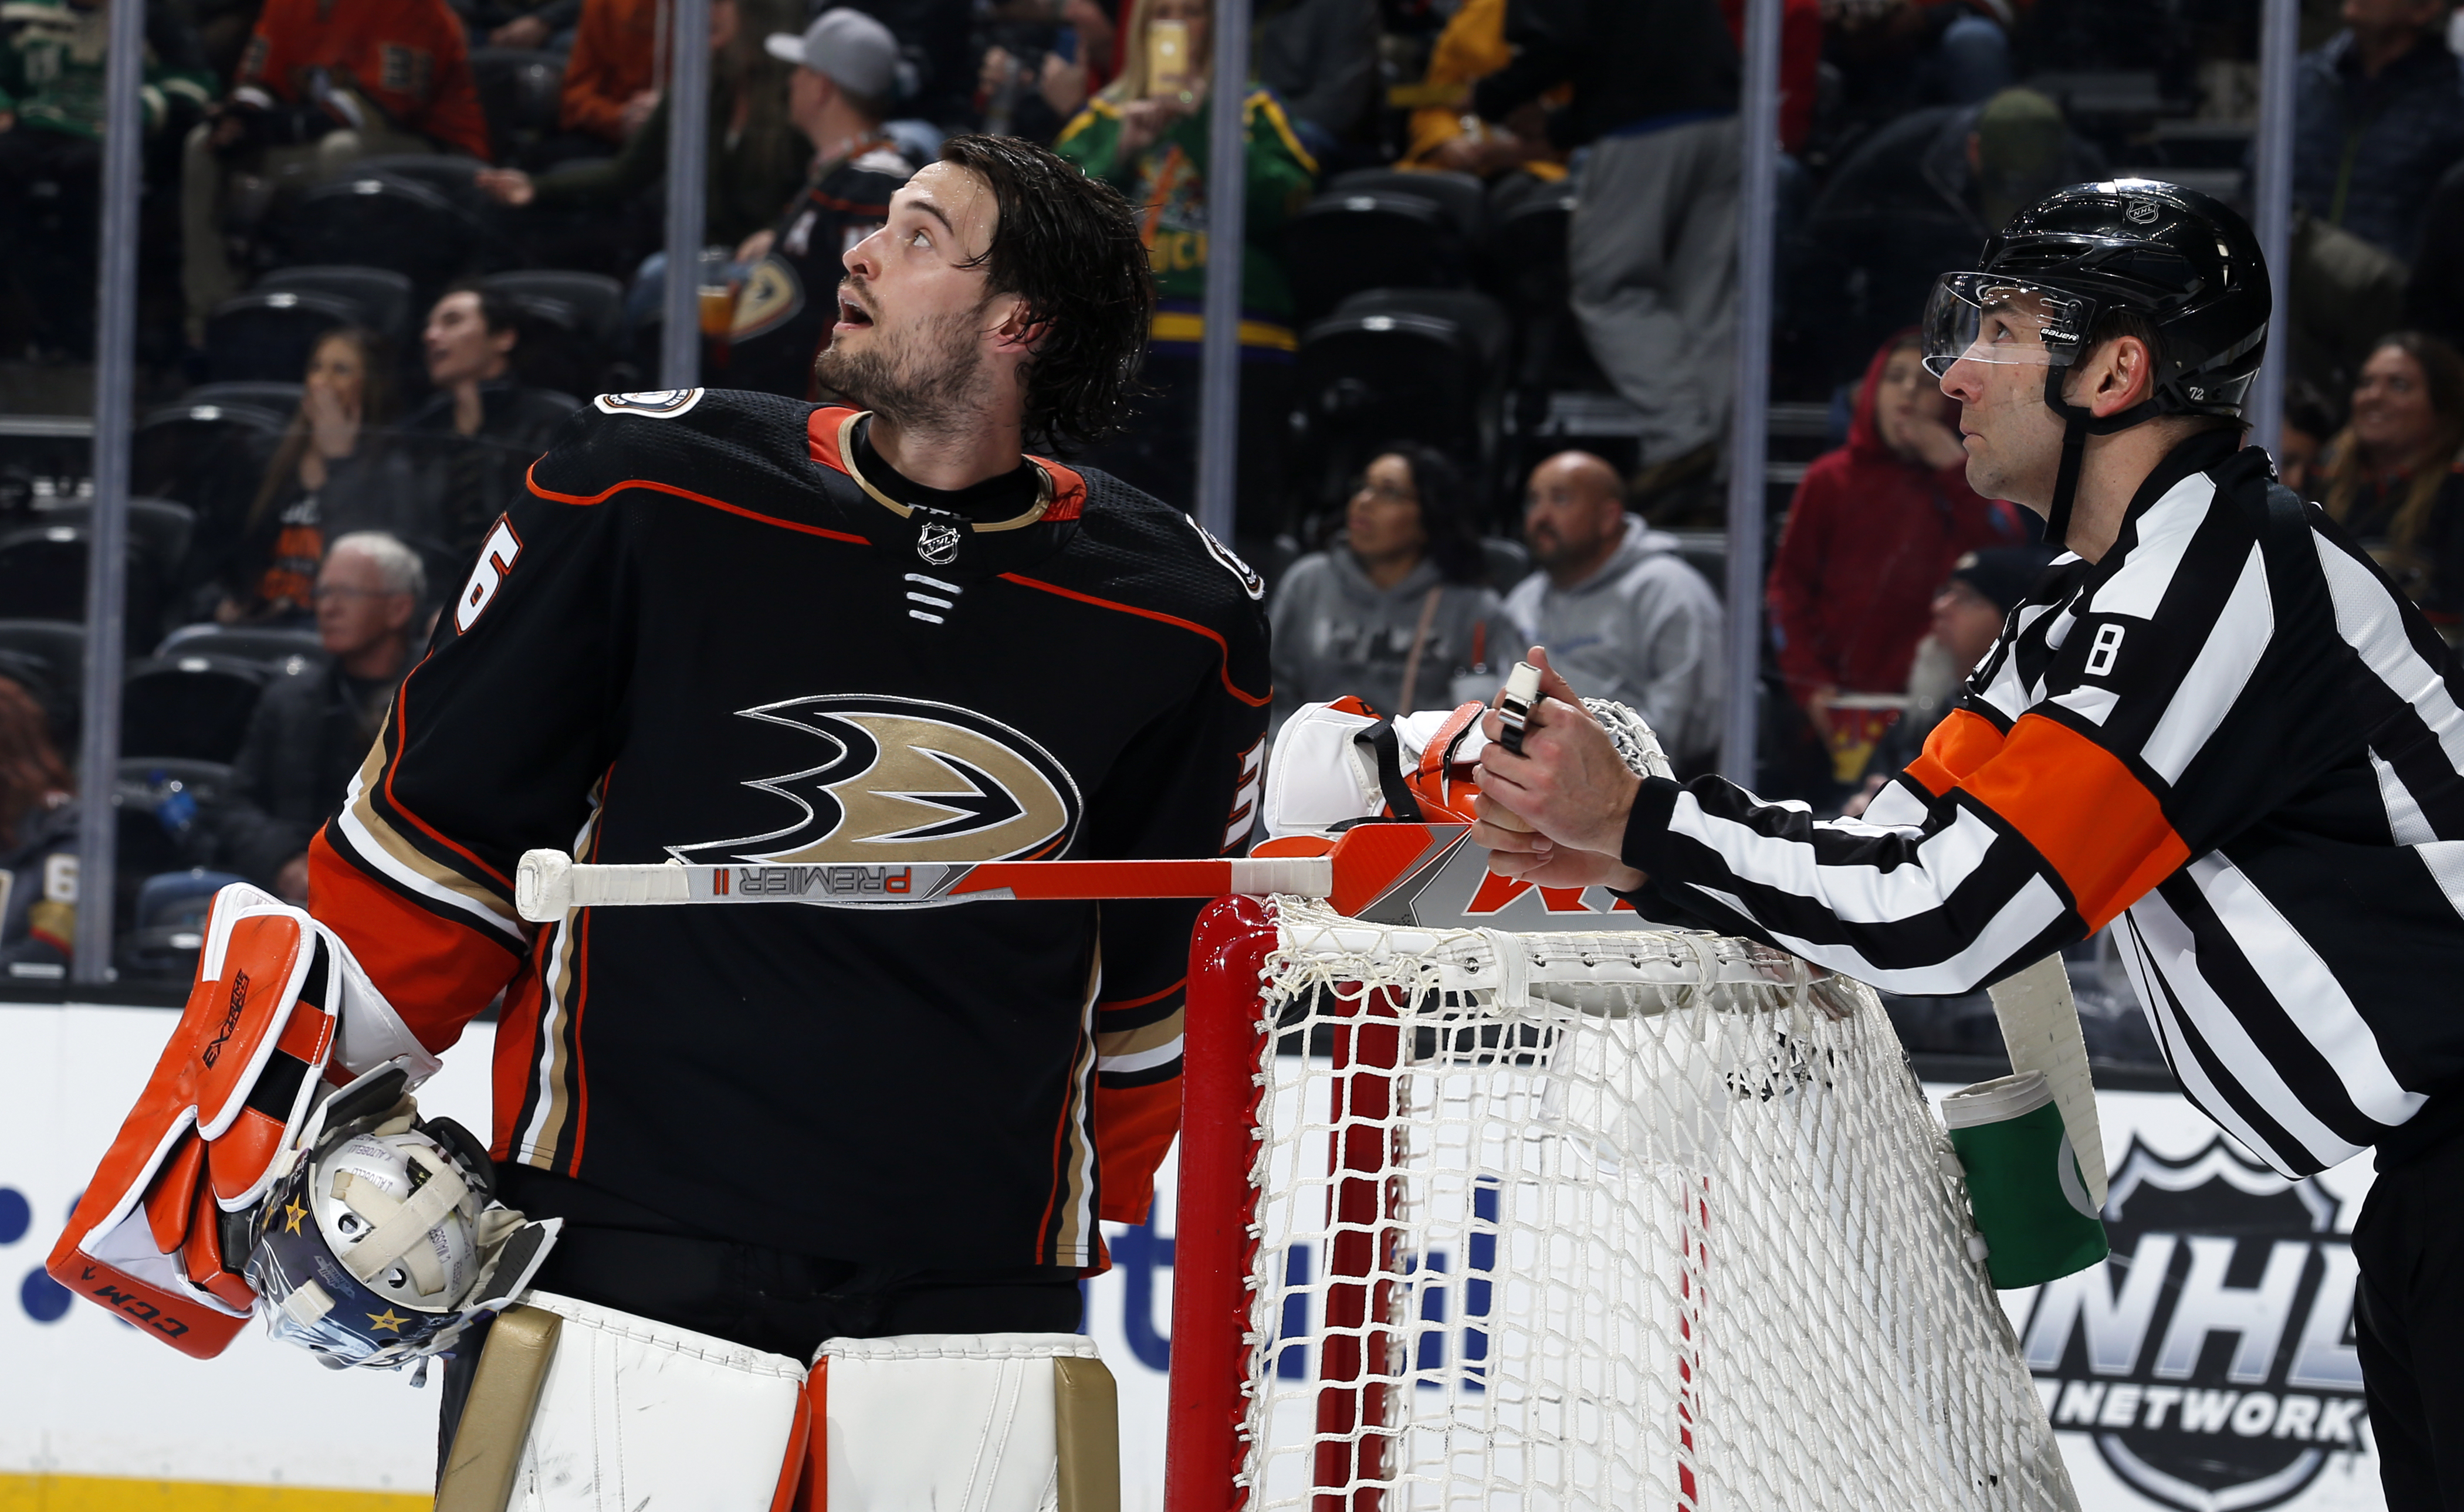 ANAHEIM, CA - FEBRUARY 23: John Gibson #36 of the Anaheim Ducks watches a replay with referee Dave Jackson #8 during the game against the Vegas Golden Knights at Honda Center on February 23, 2020 in Anaheim, California.